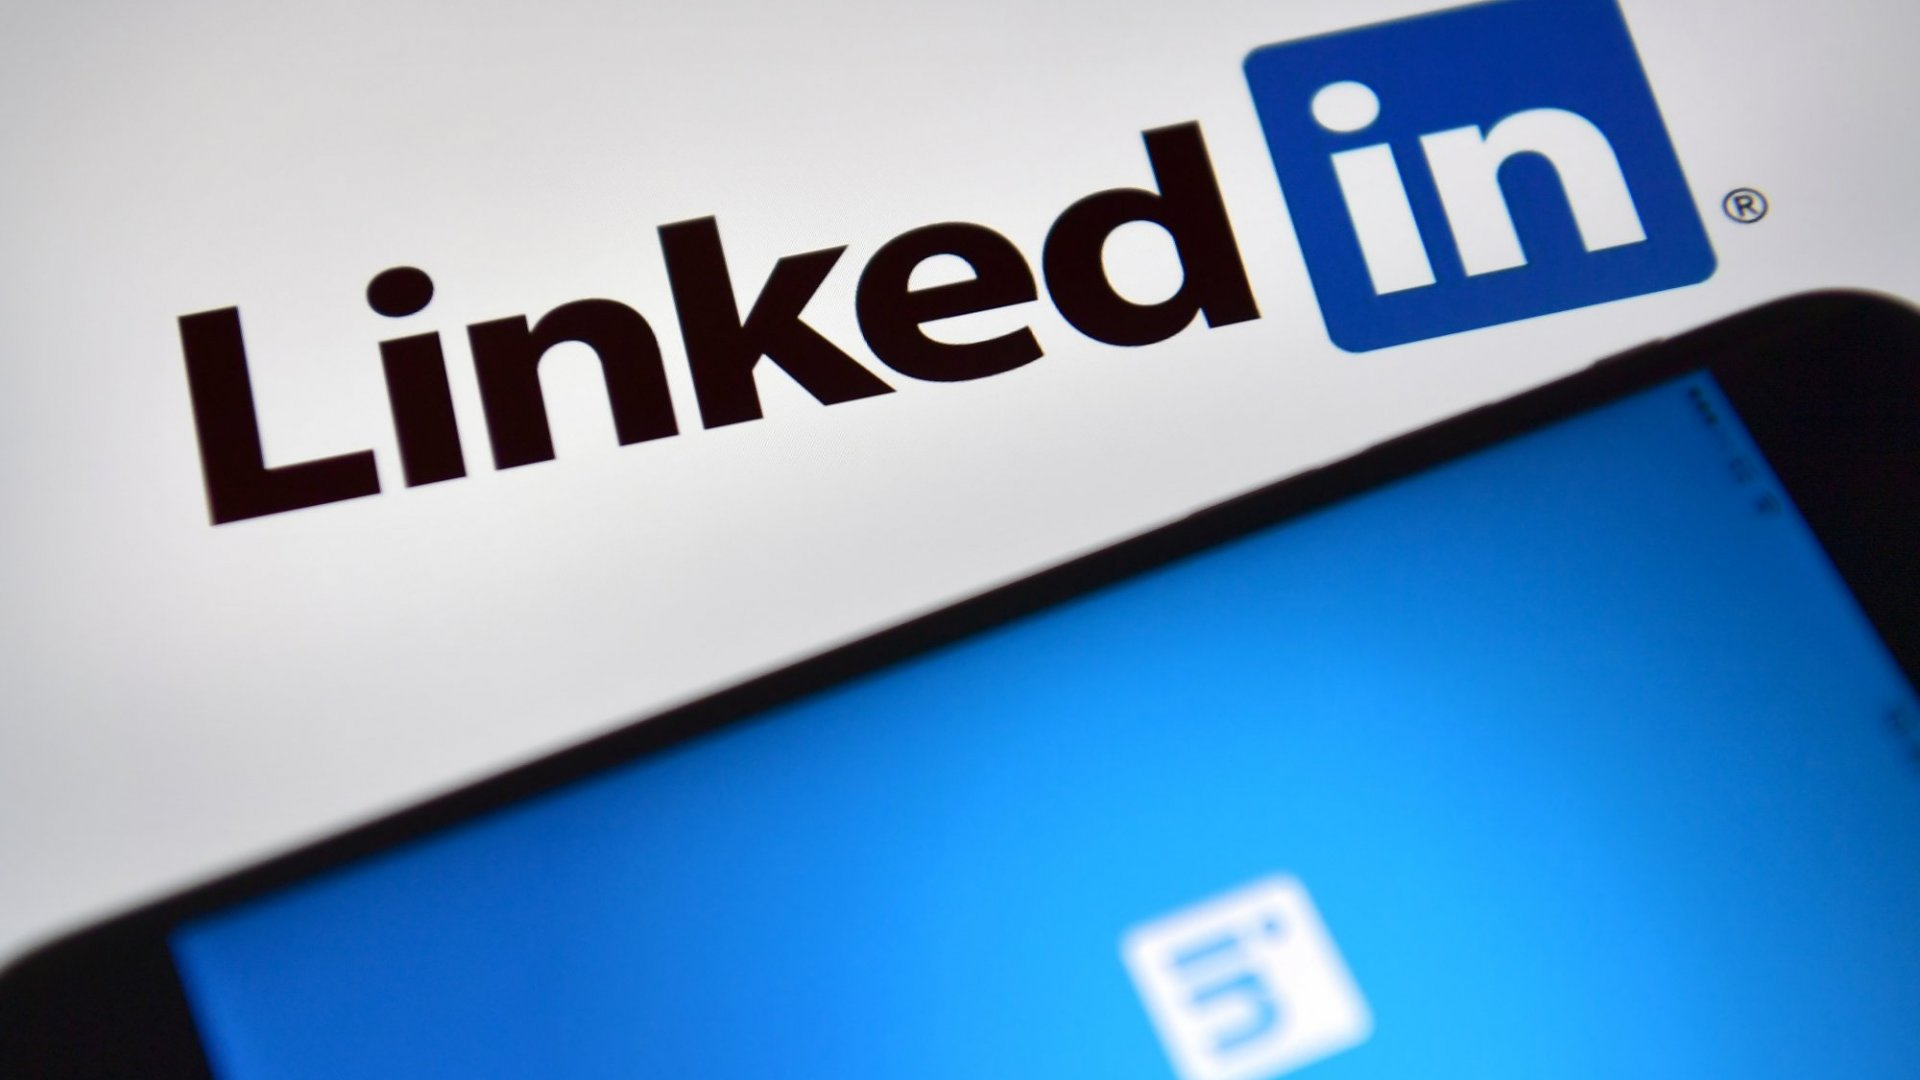 How to Market Yourself on LinkedIn - According to LinkedIn